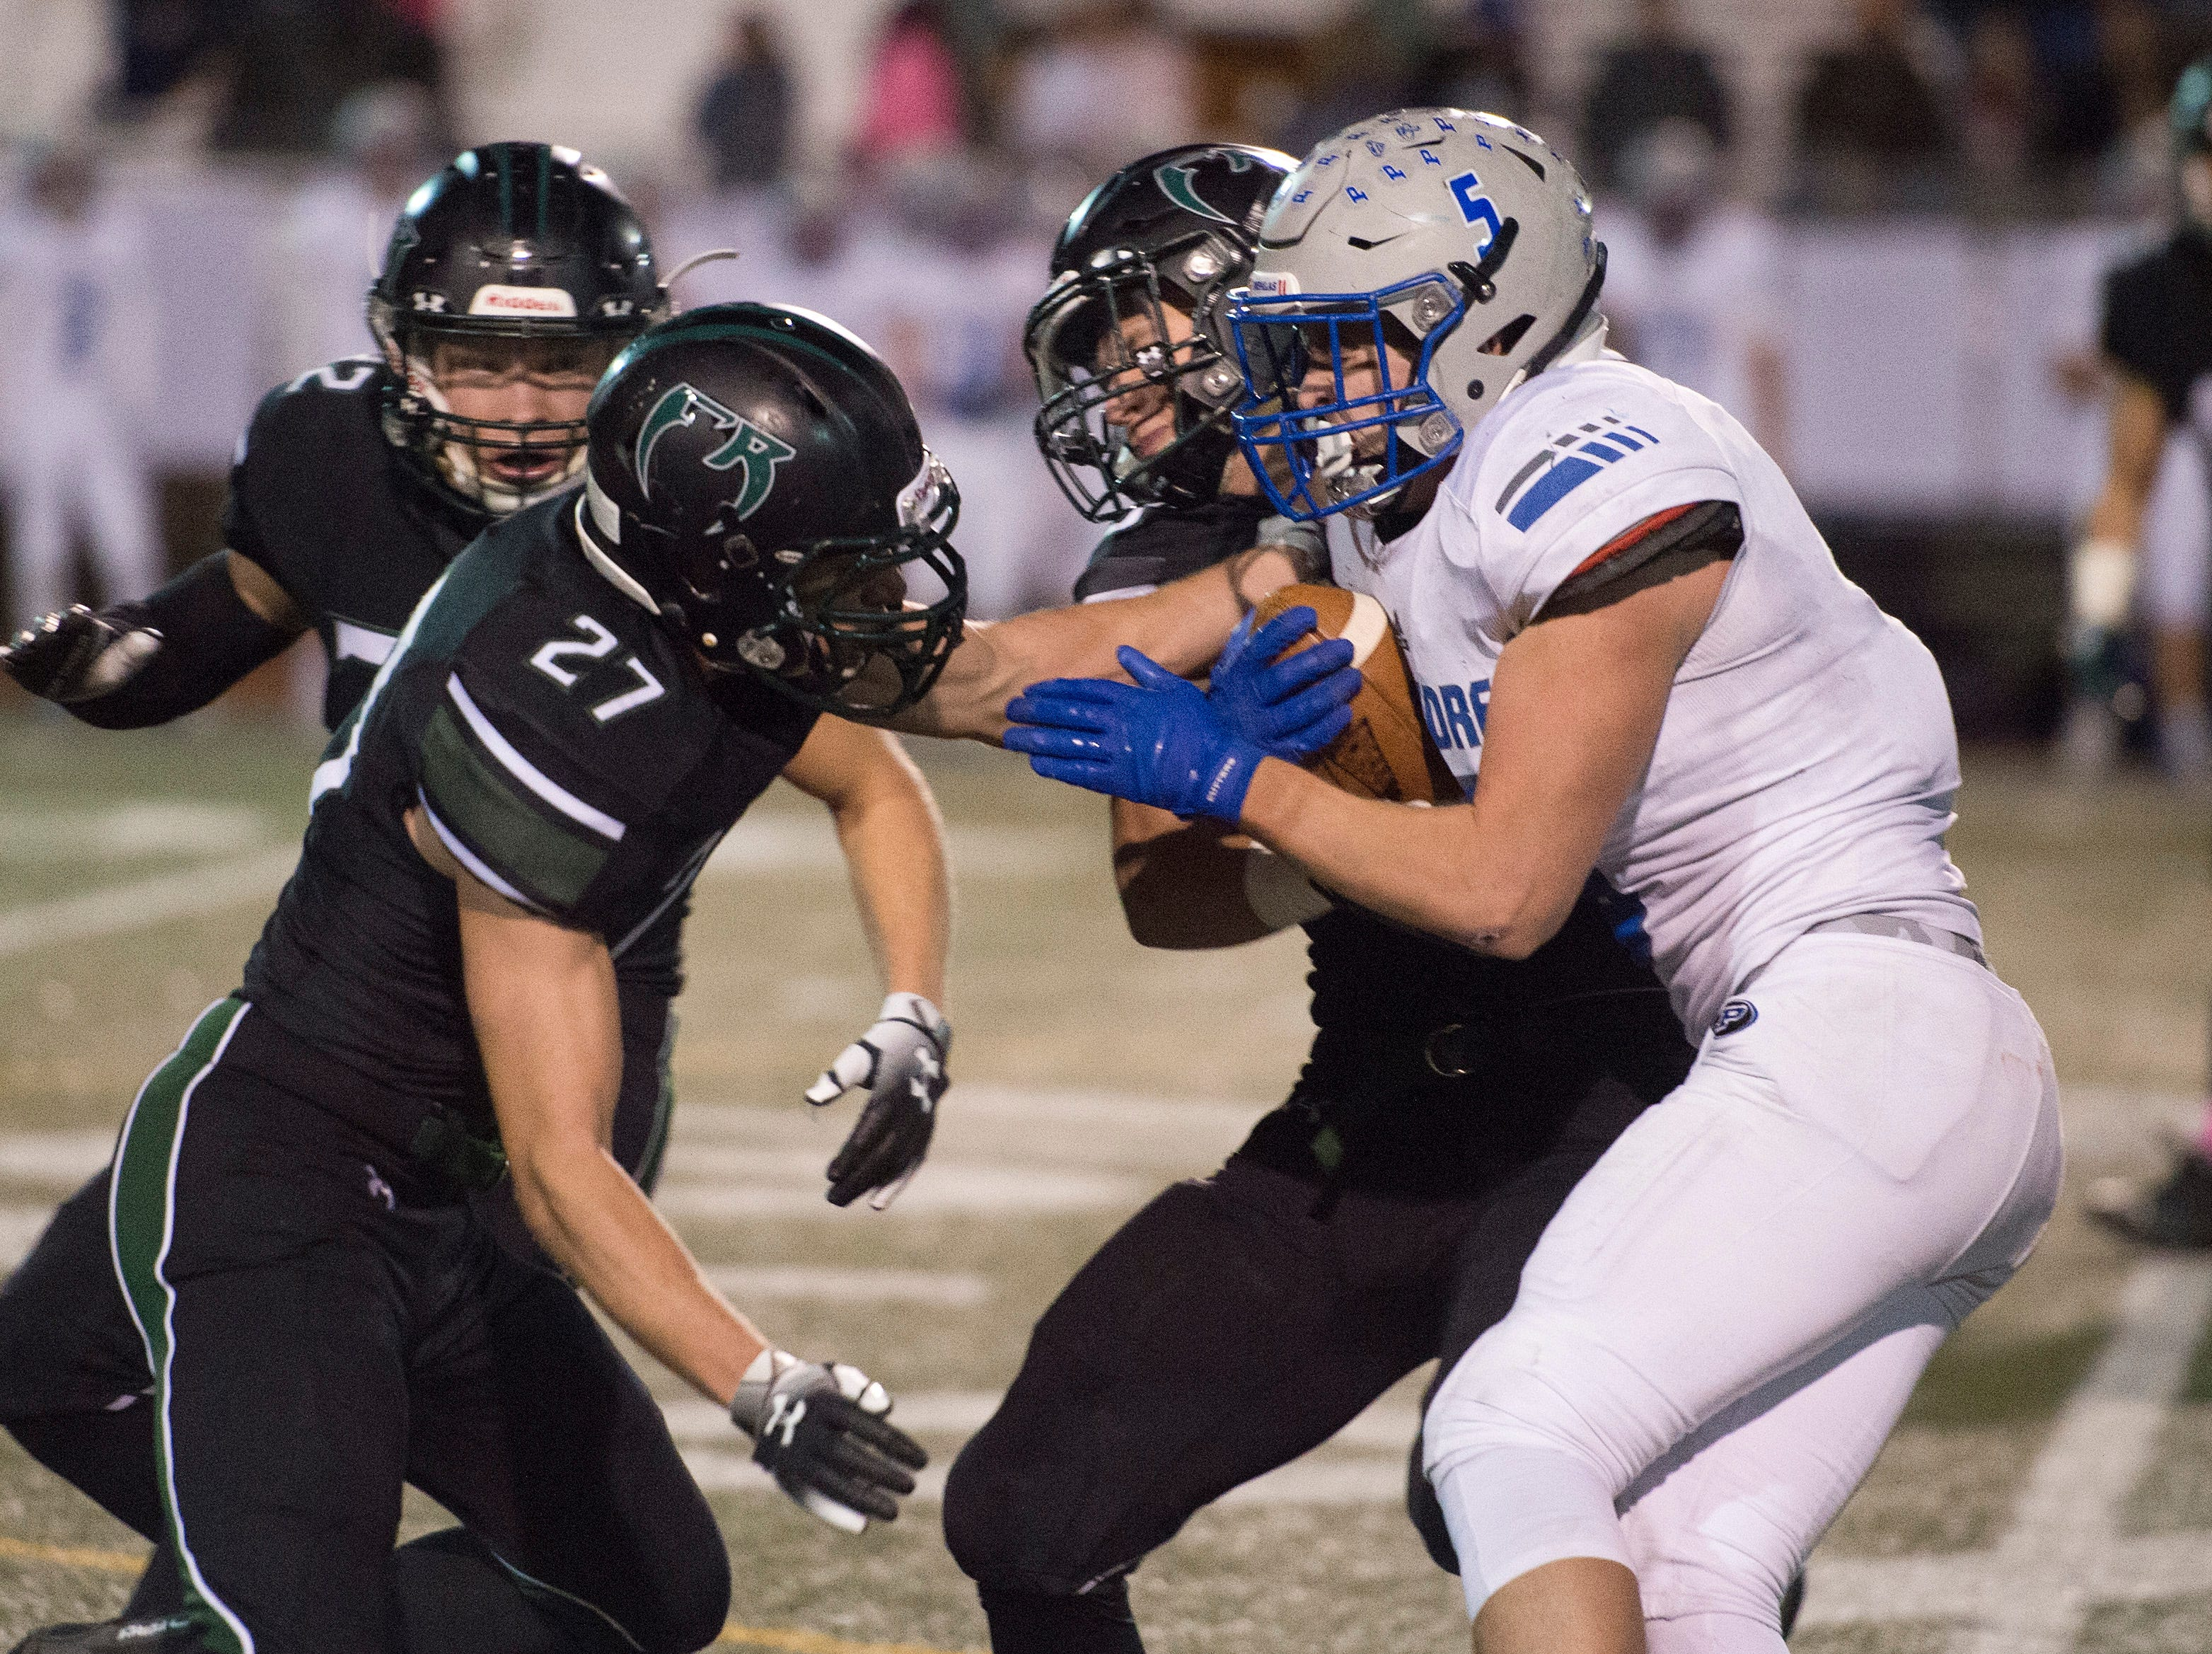 Poudre High School's Triston Burkett tries to get around Fossil Ridge defense during a game at French Field on Friday, October 26, 2018.